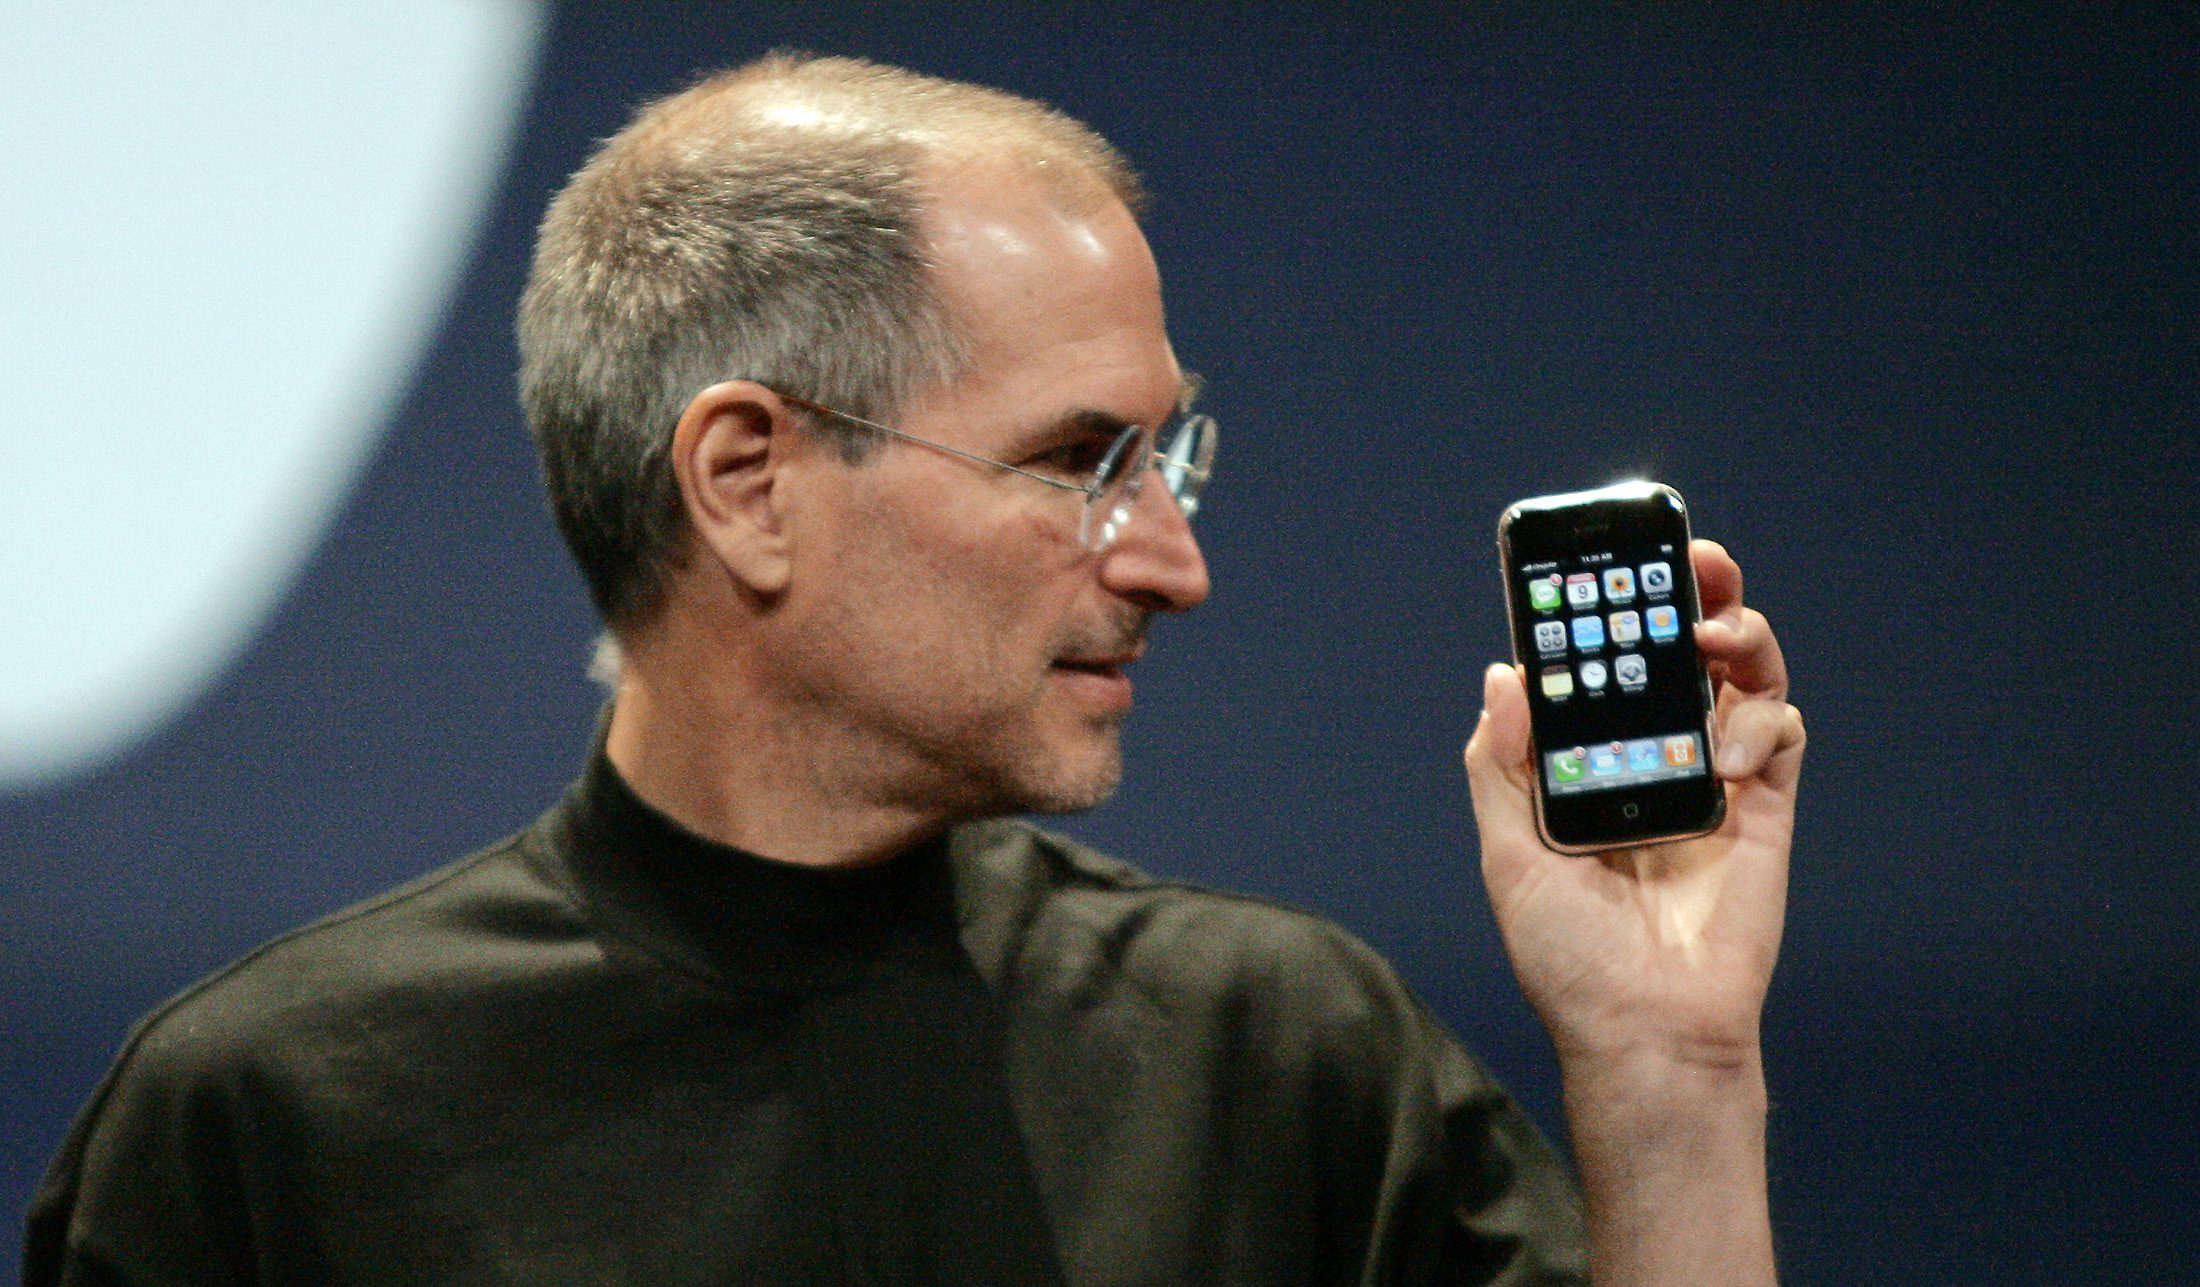 Apple Computer Inc. Chief Executive Officer Steve Jobs holds the new iPhone in San Francisco, California January 9, 2007. Apple unveiled an eagerly-anticipated iPod mobile phone with a touch-screen on Tuesday, priced at $599 for 8 gigabytes of memory, pushing the company's shares up as much as 8.5 percent. Jobs said the iPhone, which also will be available in a 4-gigabyte model for $499, will ship in June in the United States. The phones will be available in Europe in the fourth quarter and in Asia in 2008.  REUTERS/Kimberly White (UNITED STATES) FOR BEST QUALITY IMAGE SEE: GM1E7AE0B8F01 - GM1DUITMLKAA